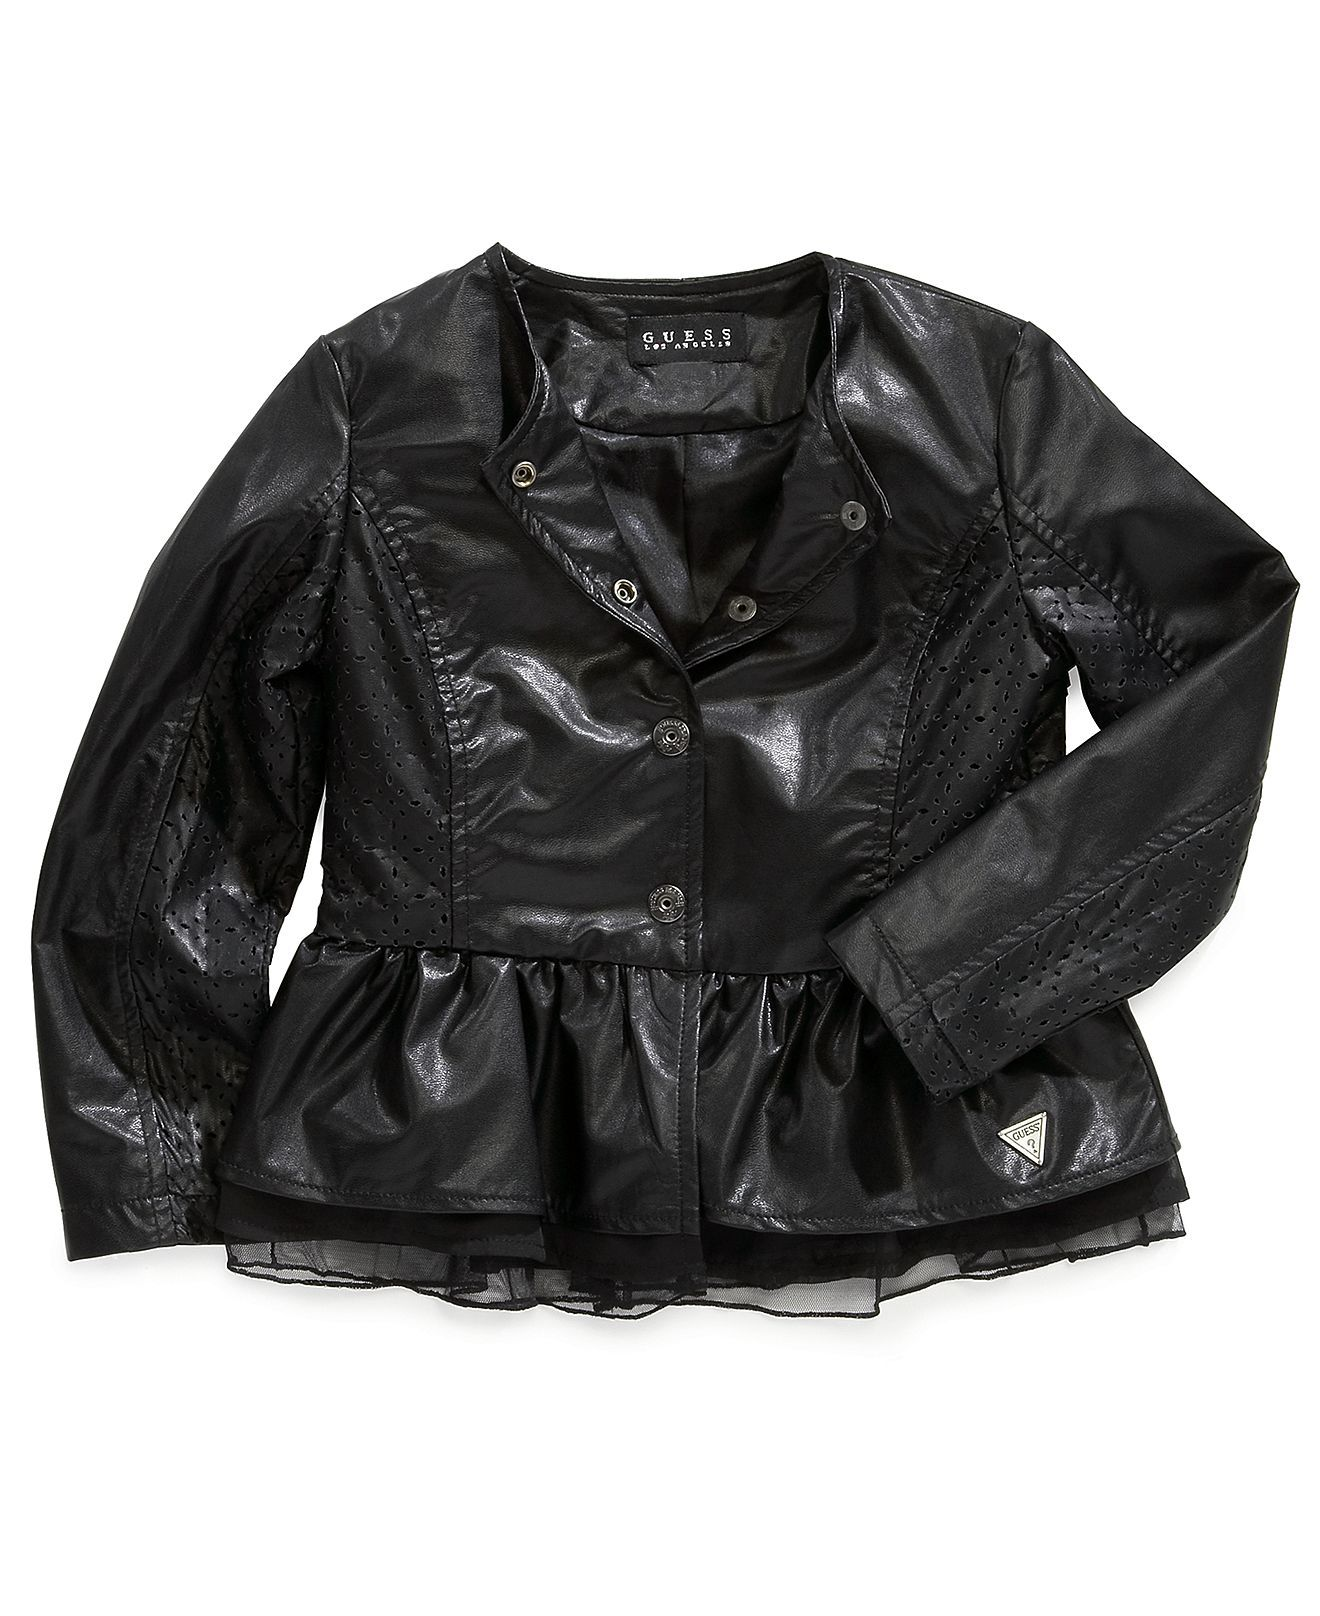 GUESS Kids Jacket Girls Faux Leather Jacket Kids Girls 7 16